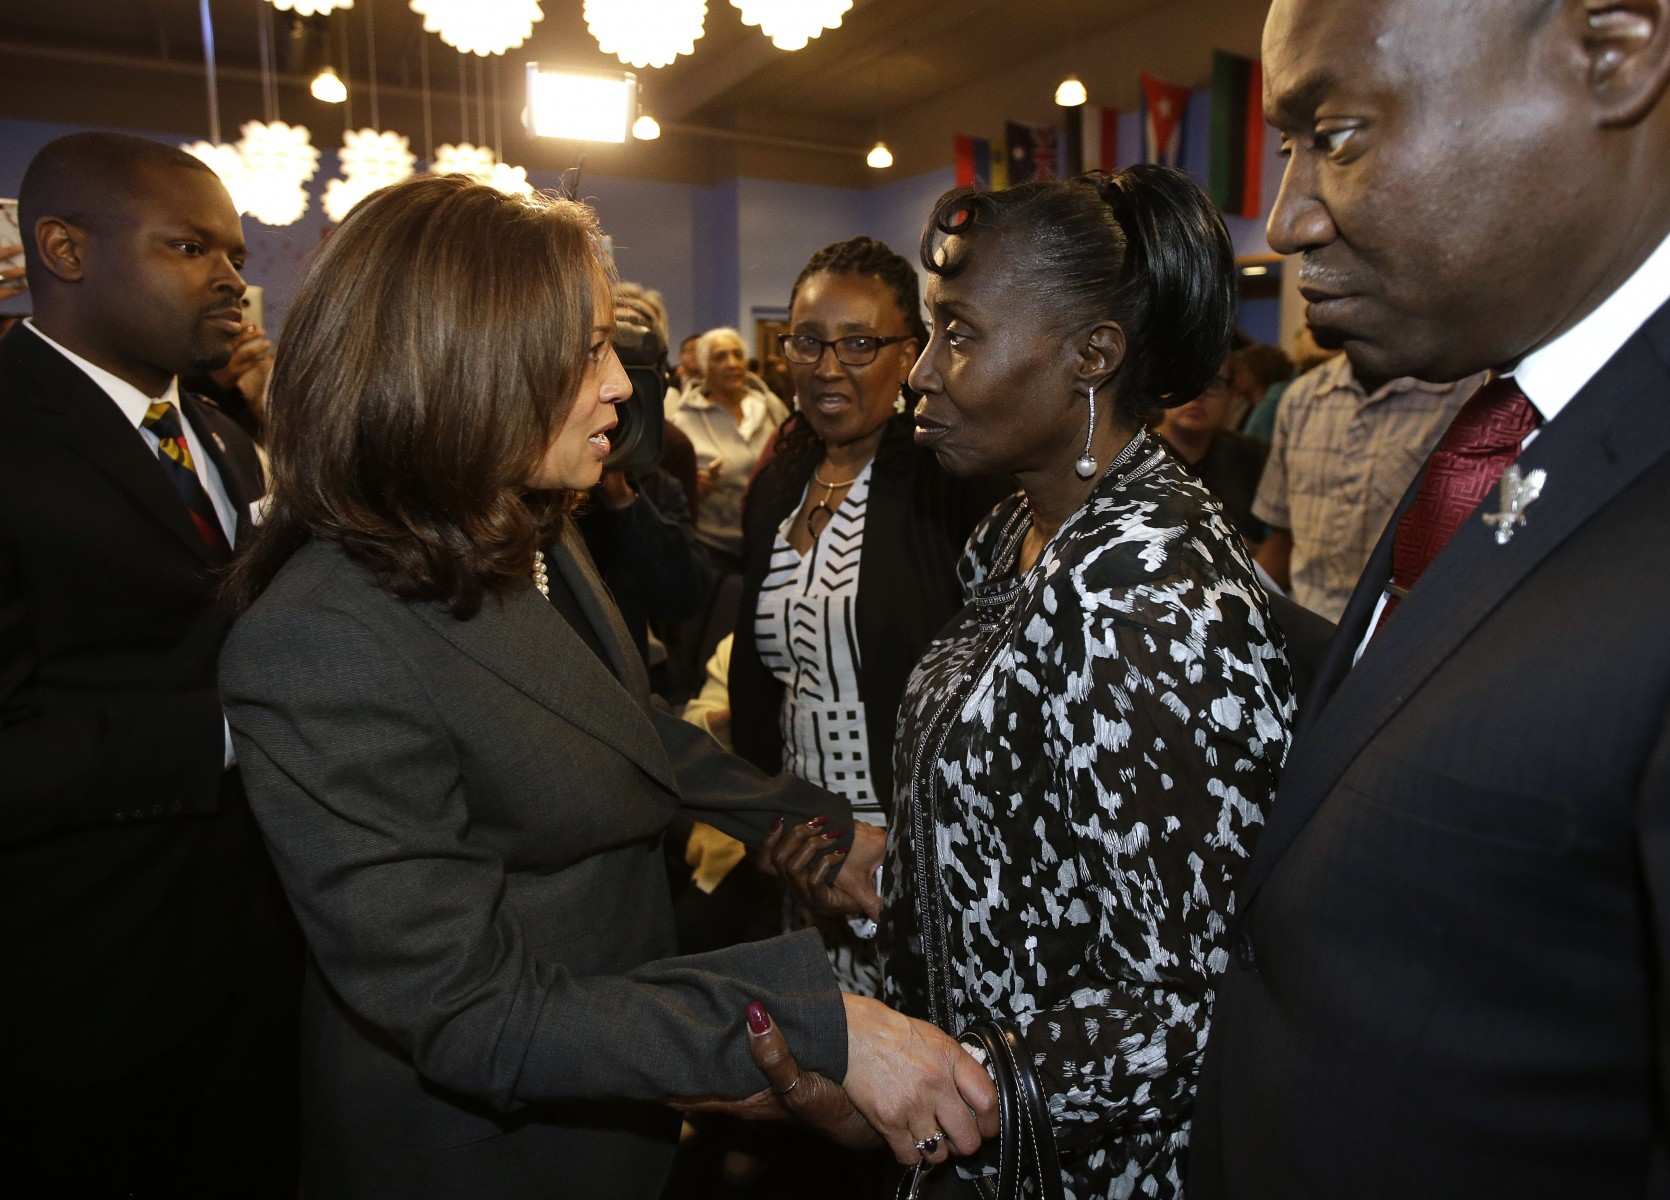 U.S. Sen. Kamala Harris, D-Calif., left, talks with constituent at town hall.  (AP Photo/Rich Pedroncelli)